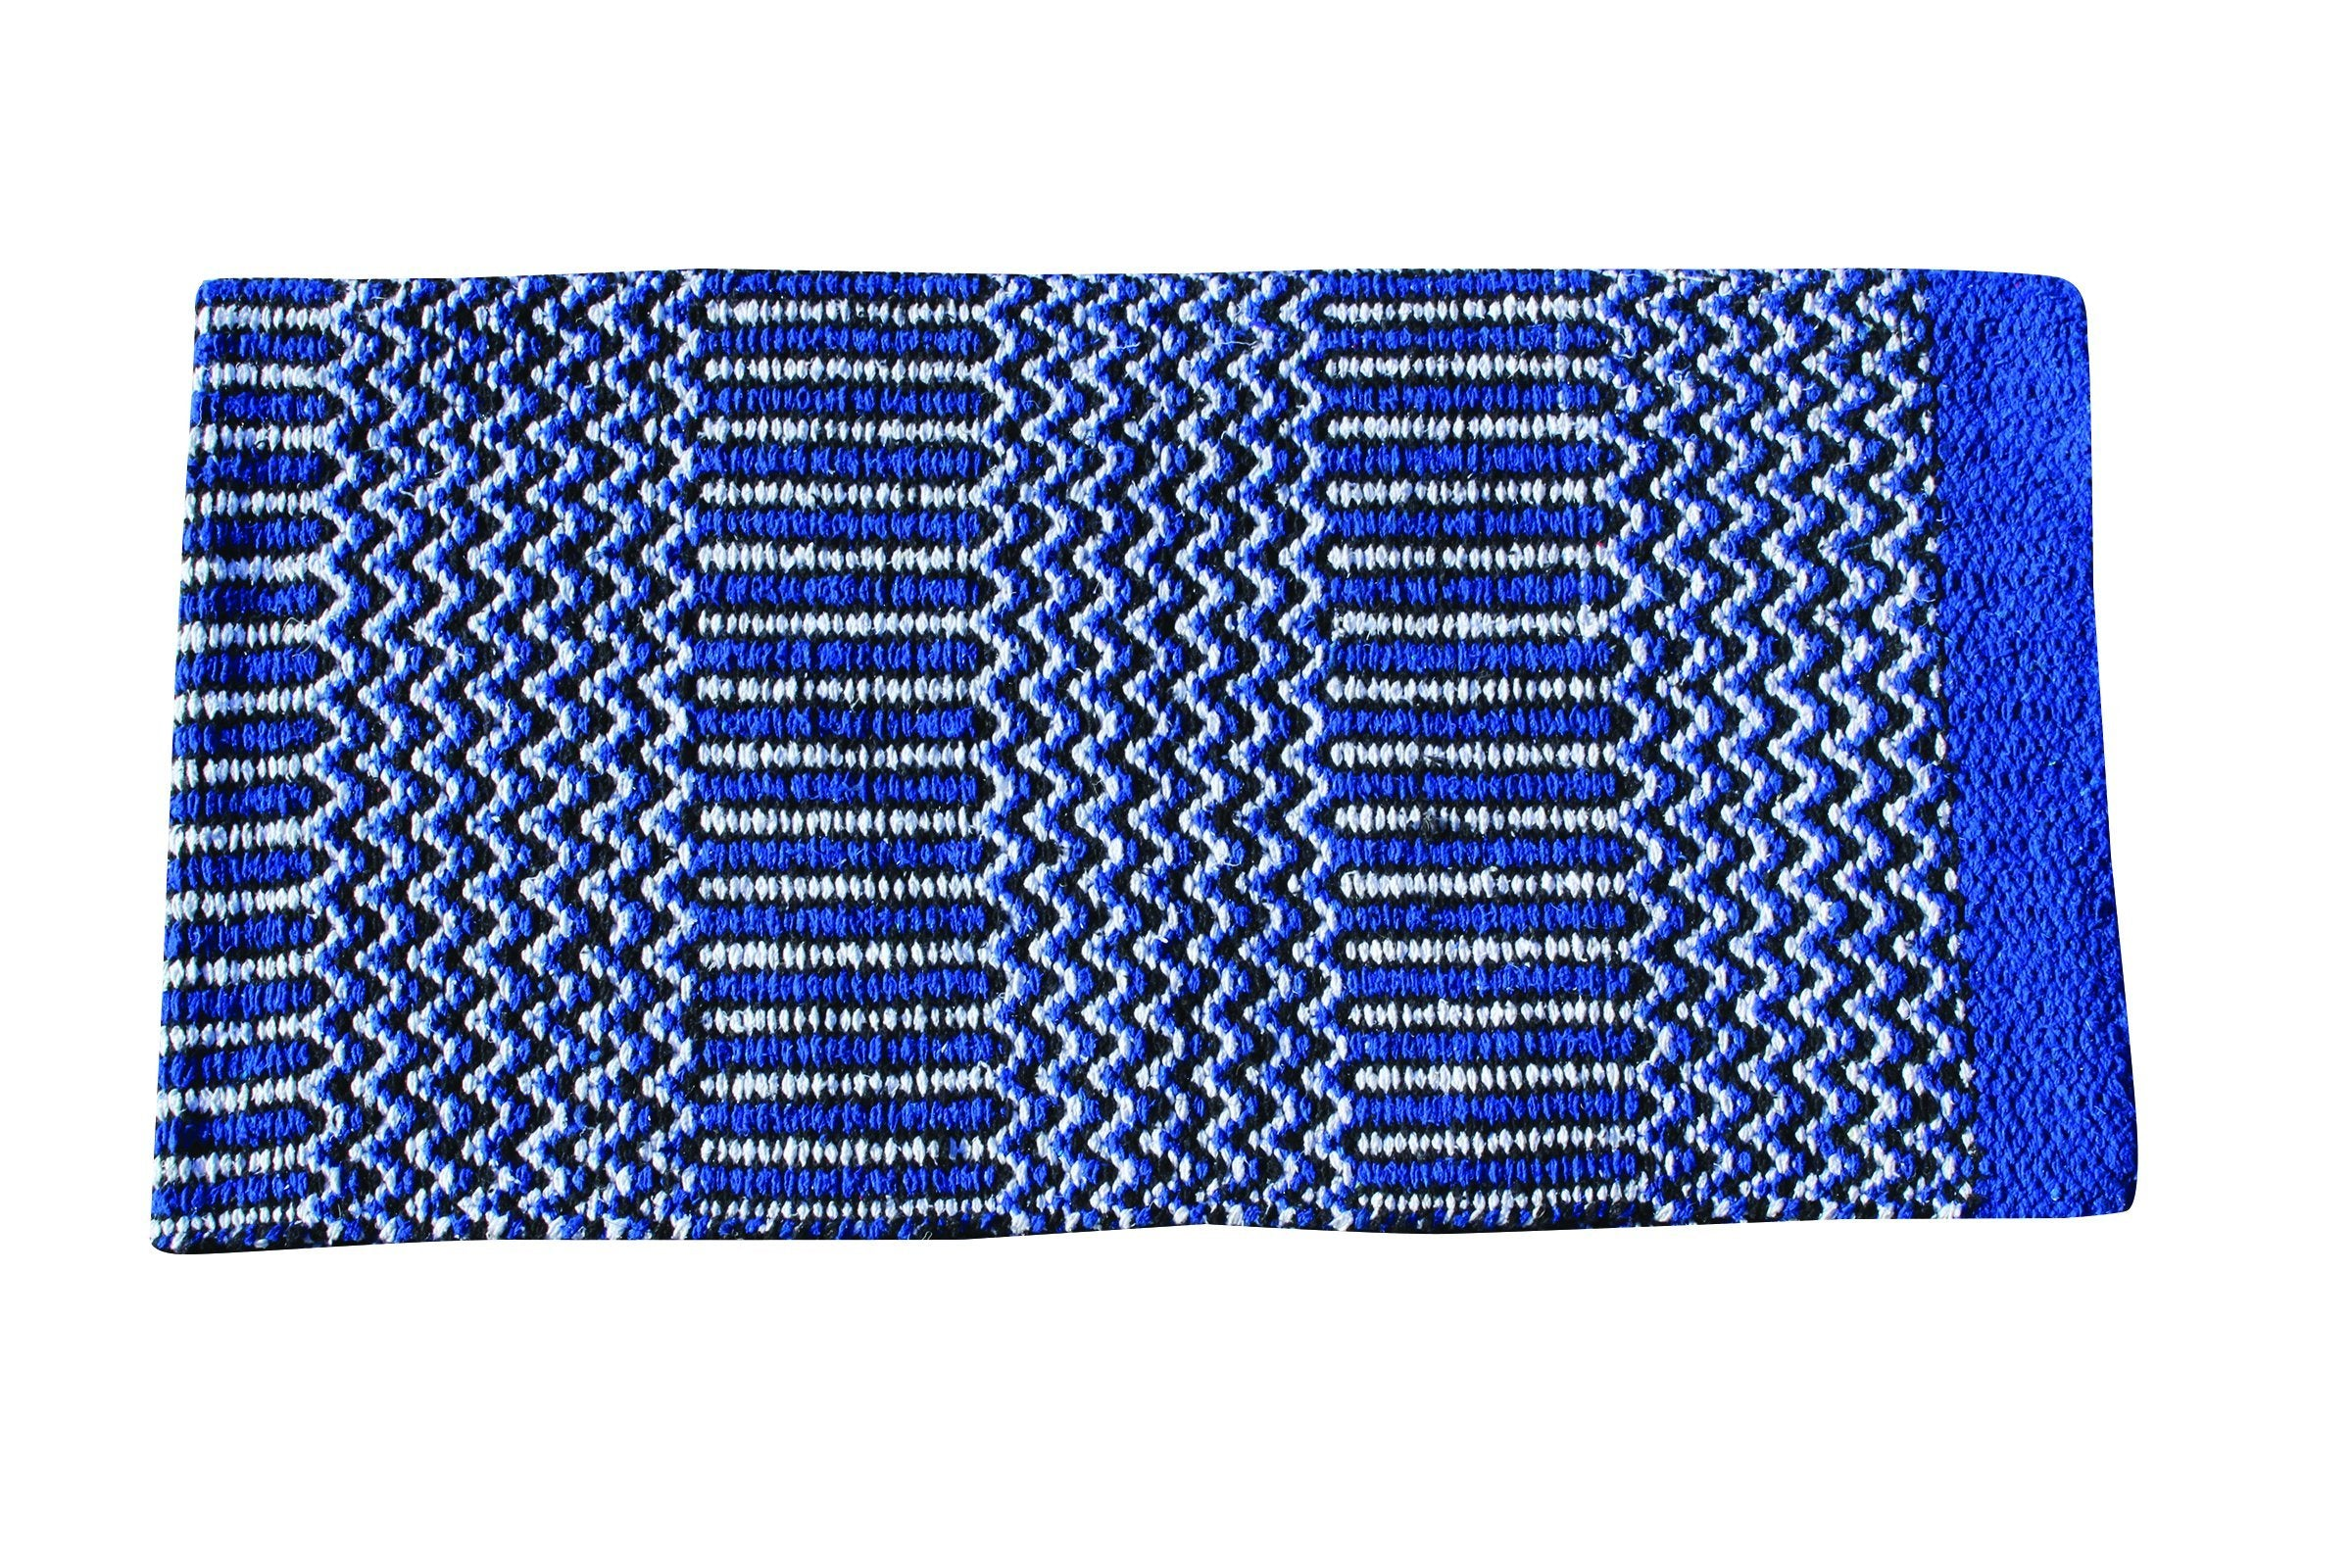 Load image into Gallery viewer, Professional's Choice Double Weave Navajo Blanket - Animal Health Express